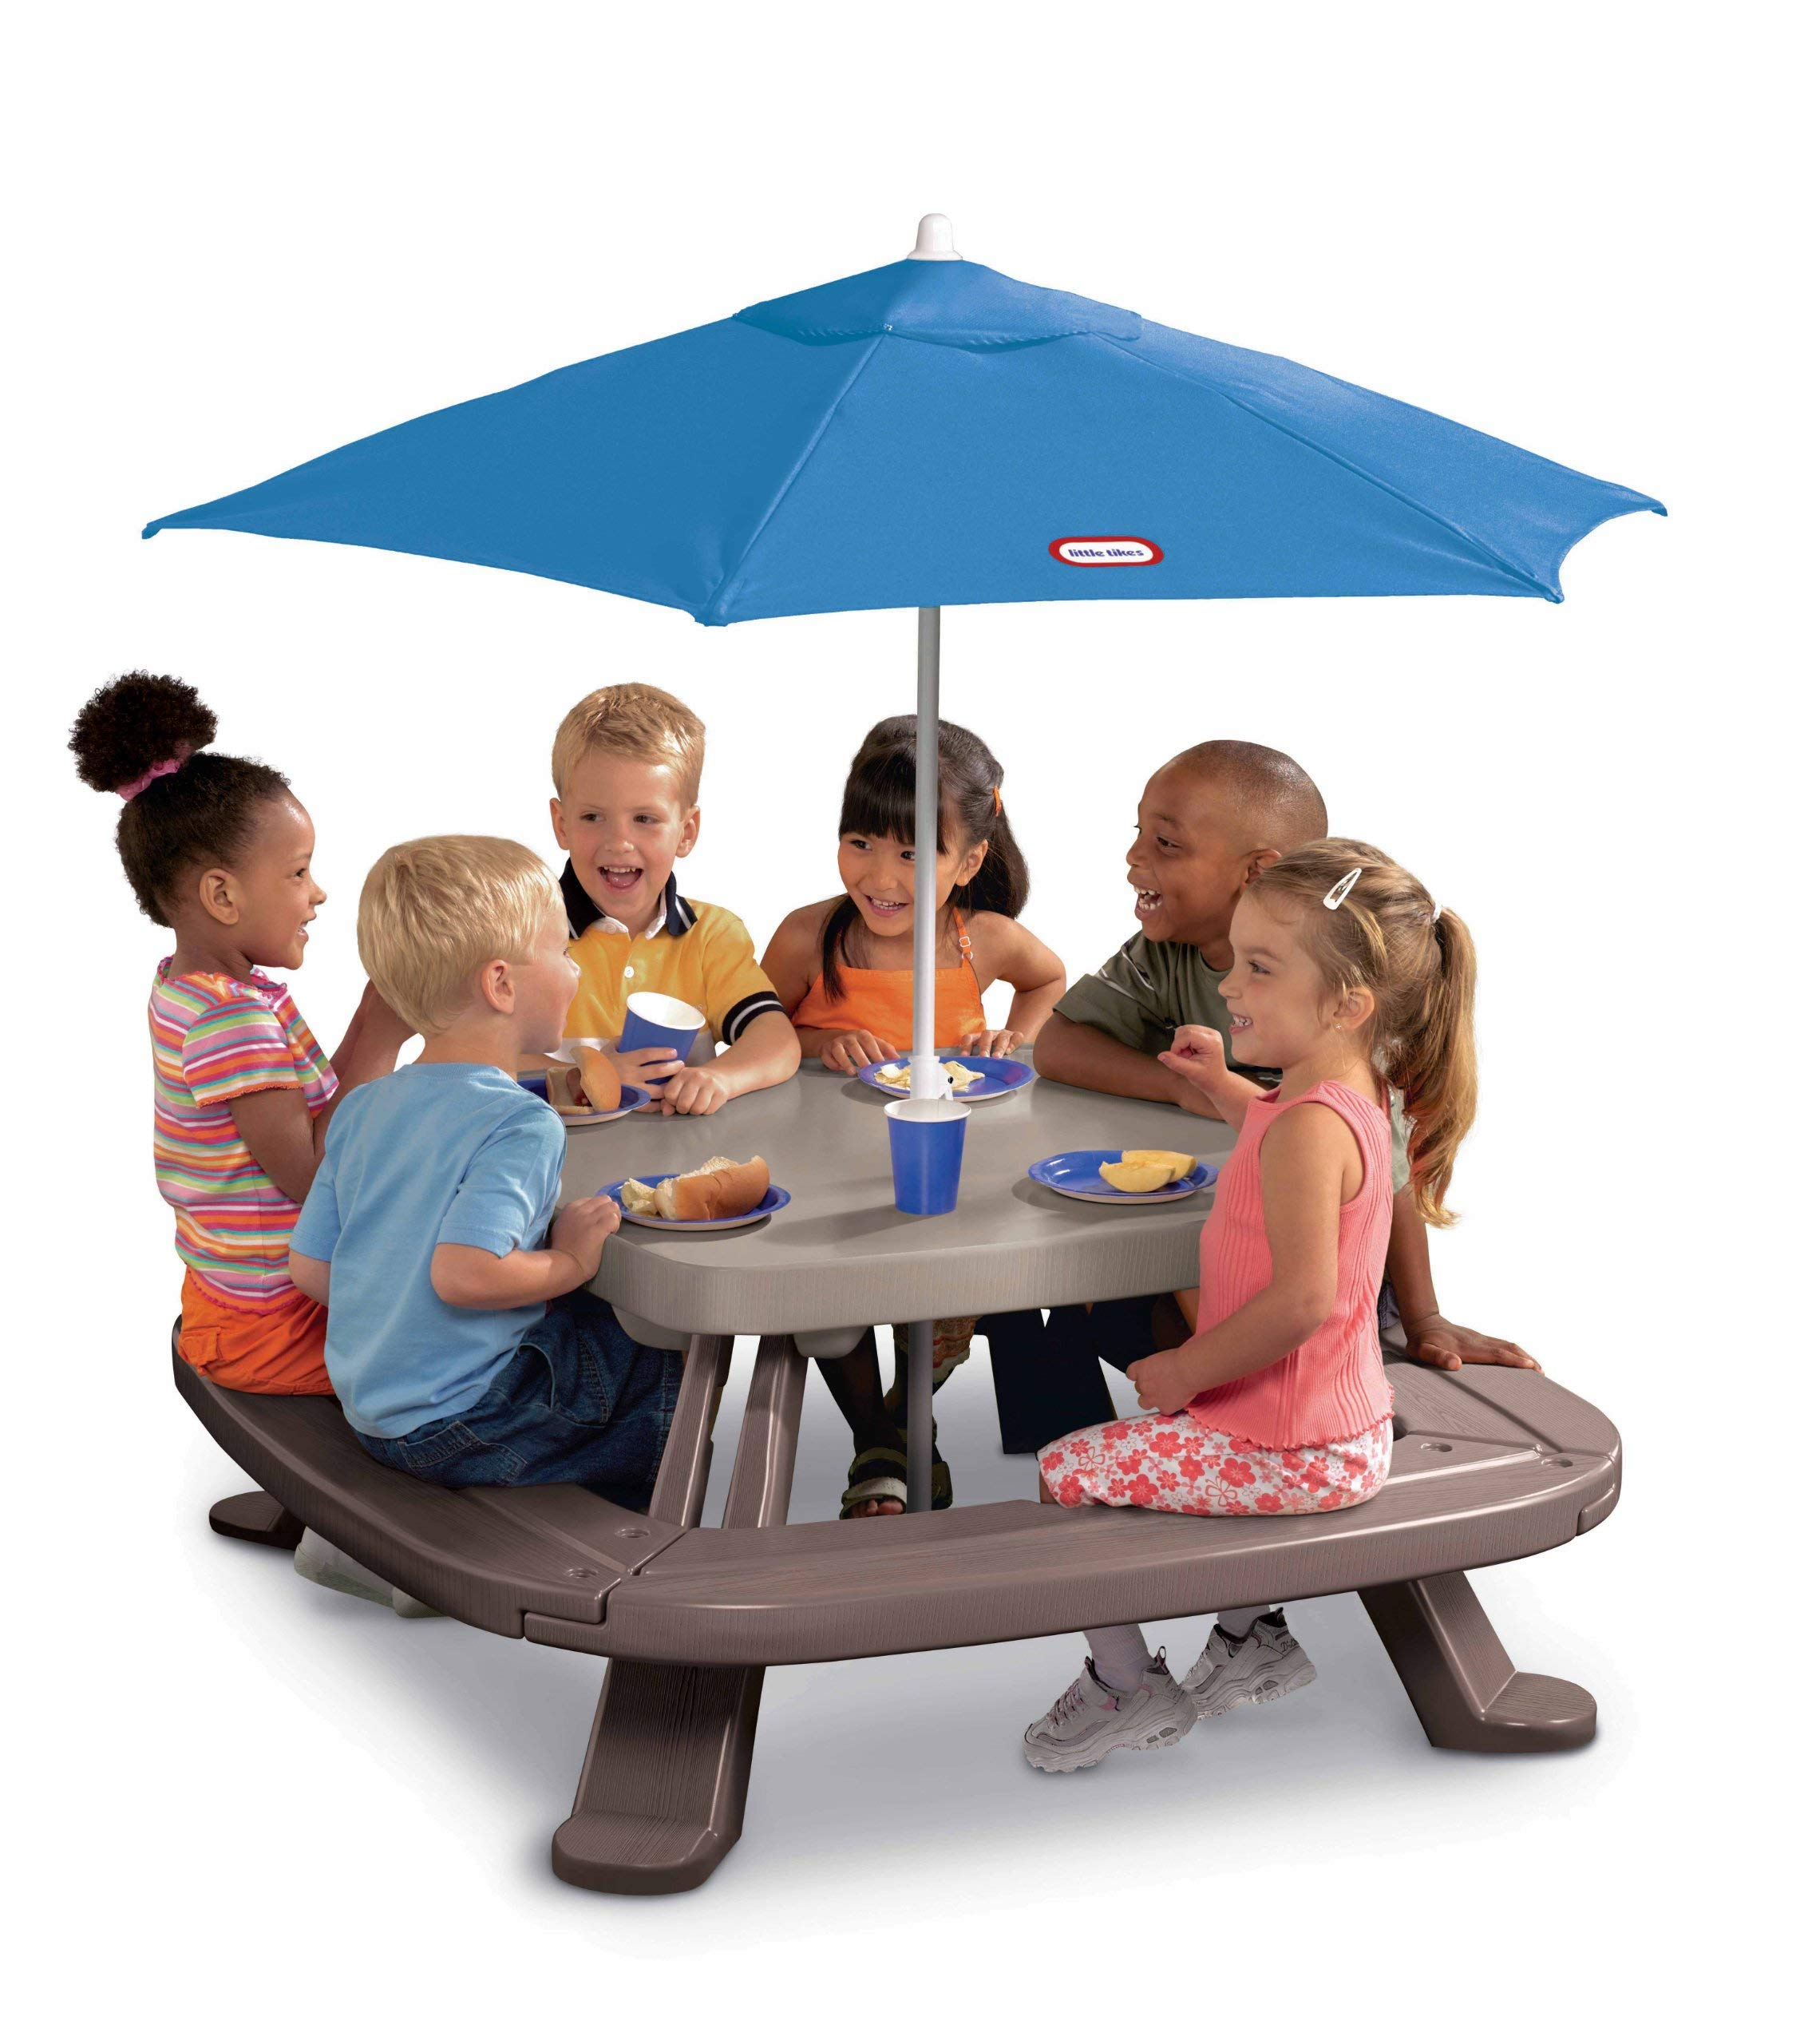 Little Tikes Fold 'n Store Picnic Table with Market Umbrella (Renewed) by Little Tikes